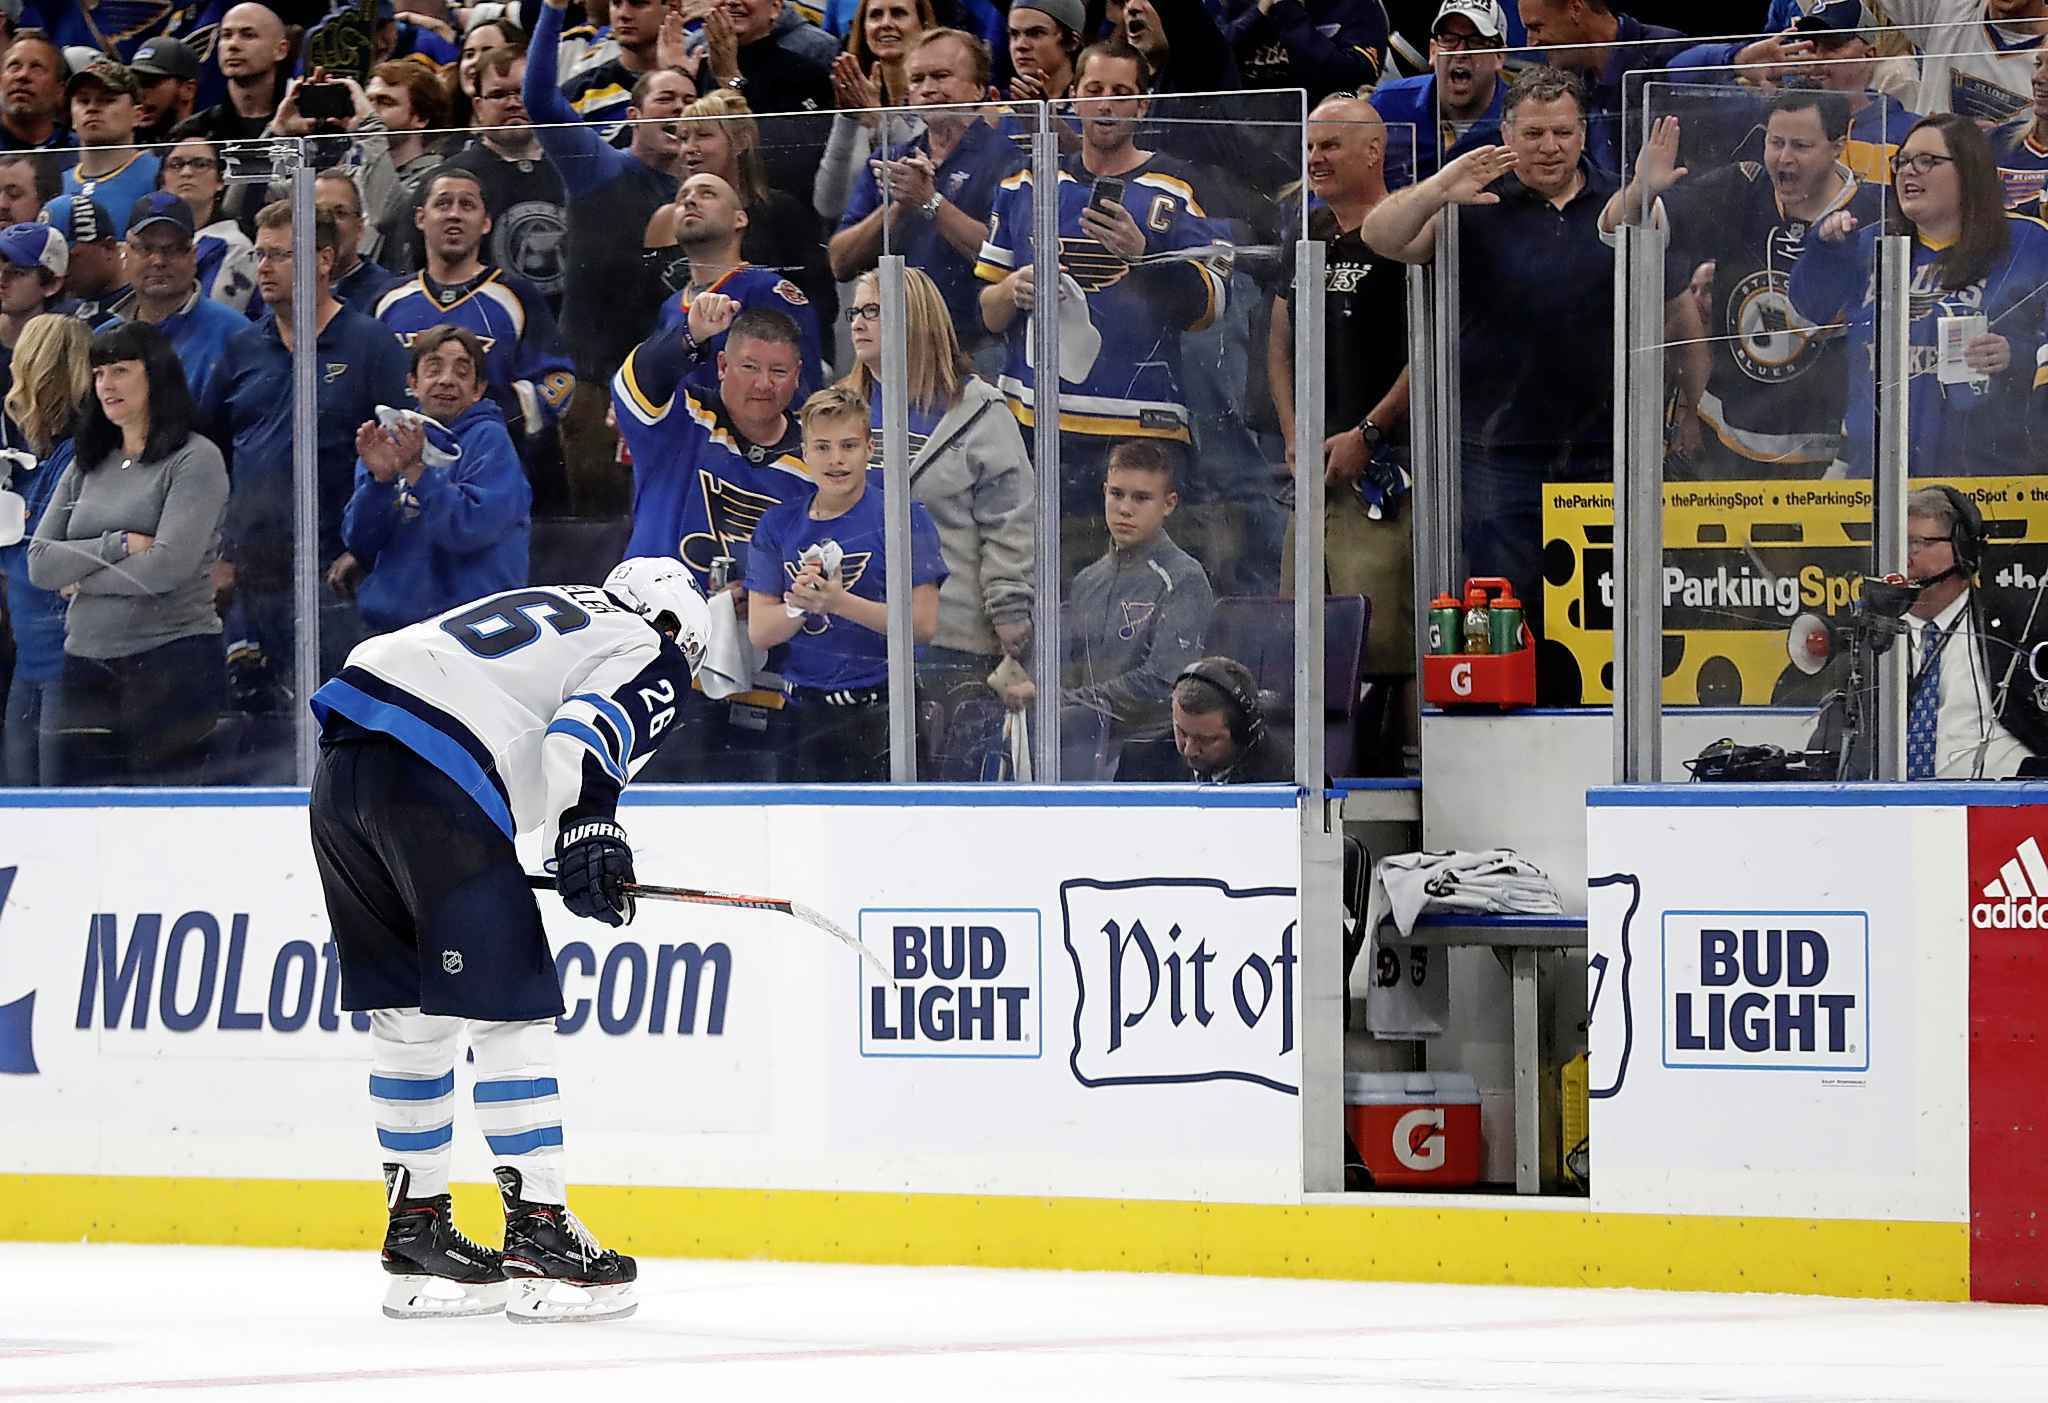 Blake Wheeler heads to the penalty box with just over two minutes remaining in the third period in Game 6 against the St. Louis Blues. (Jeff Roberson / The Associated Press files)